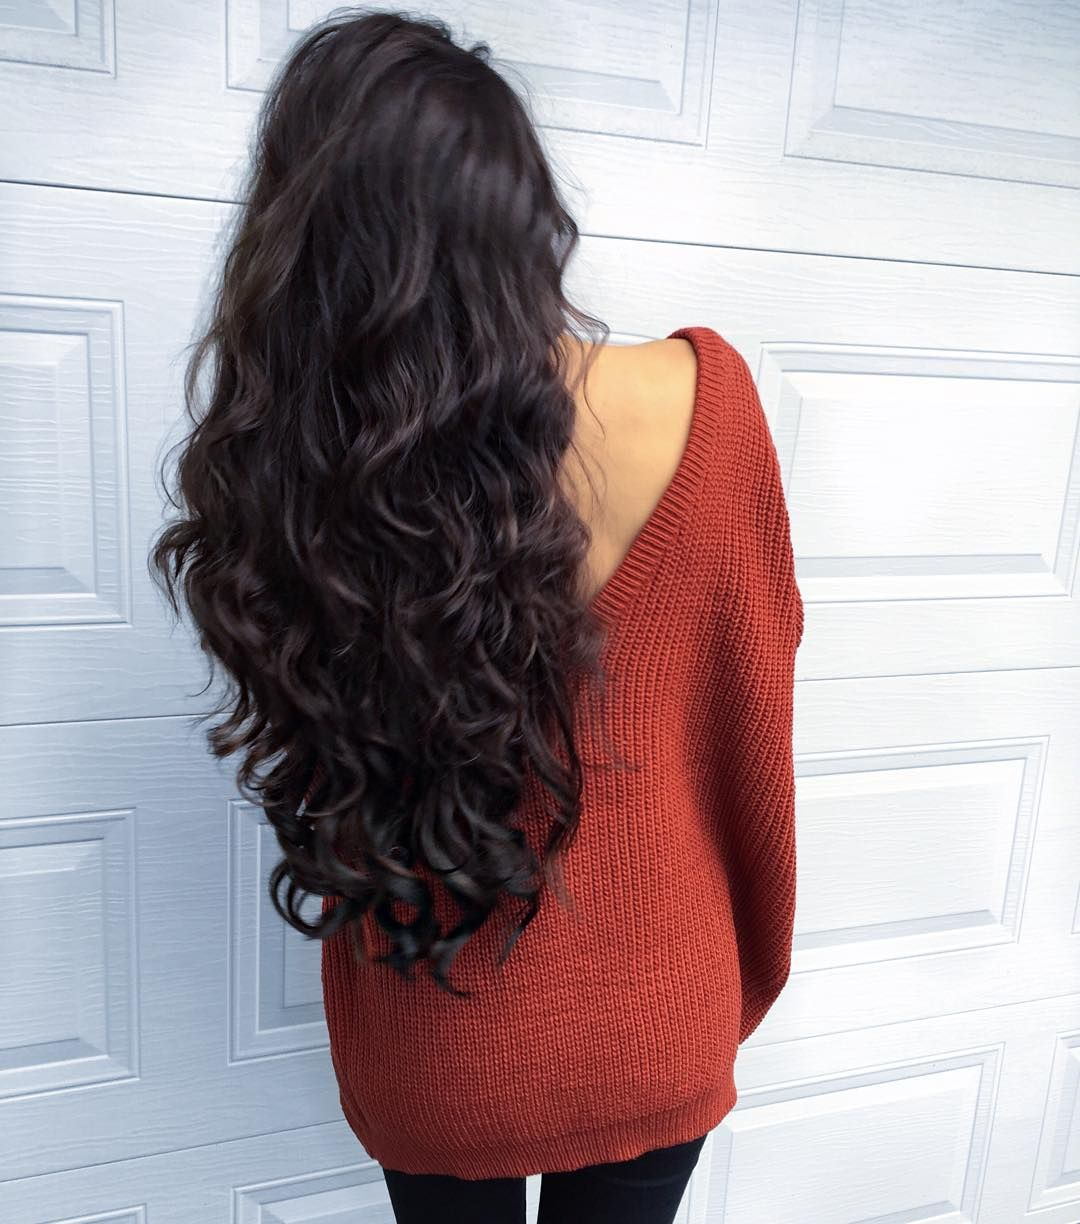 Unique hairstyles hairstyles pinterest unique hairstyles